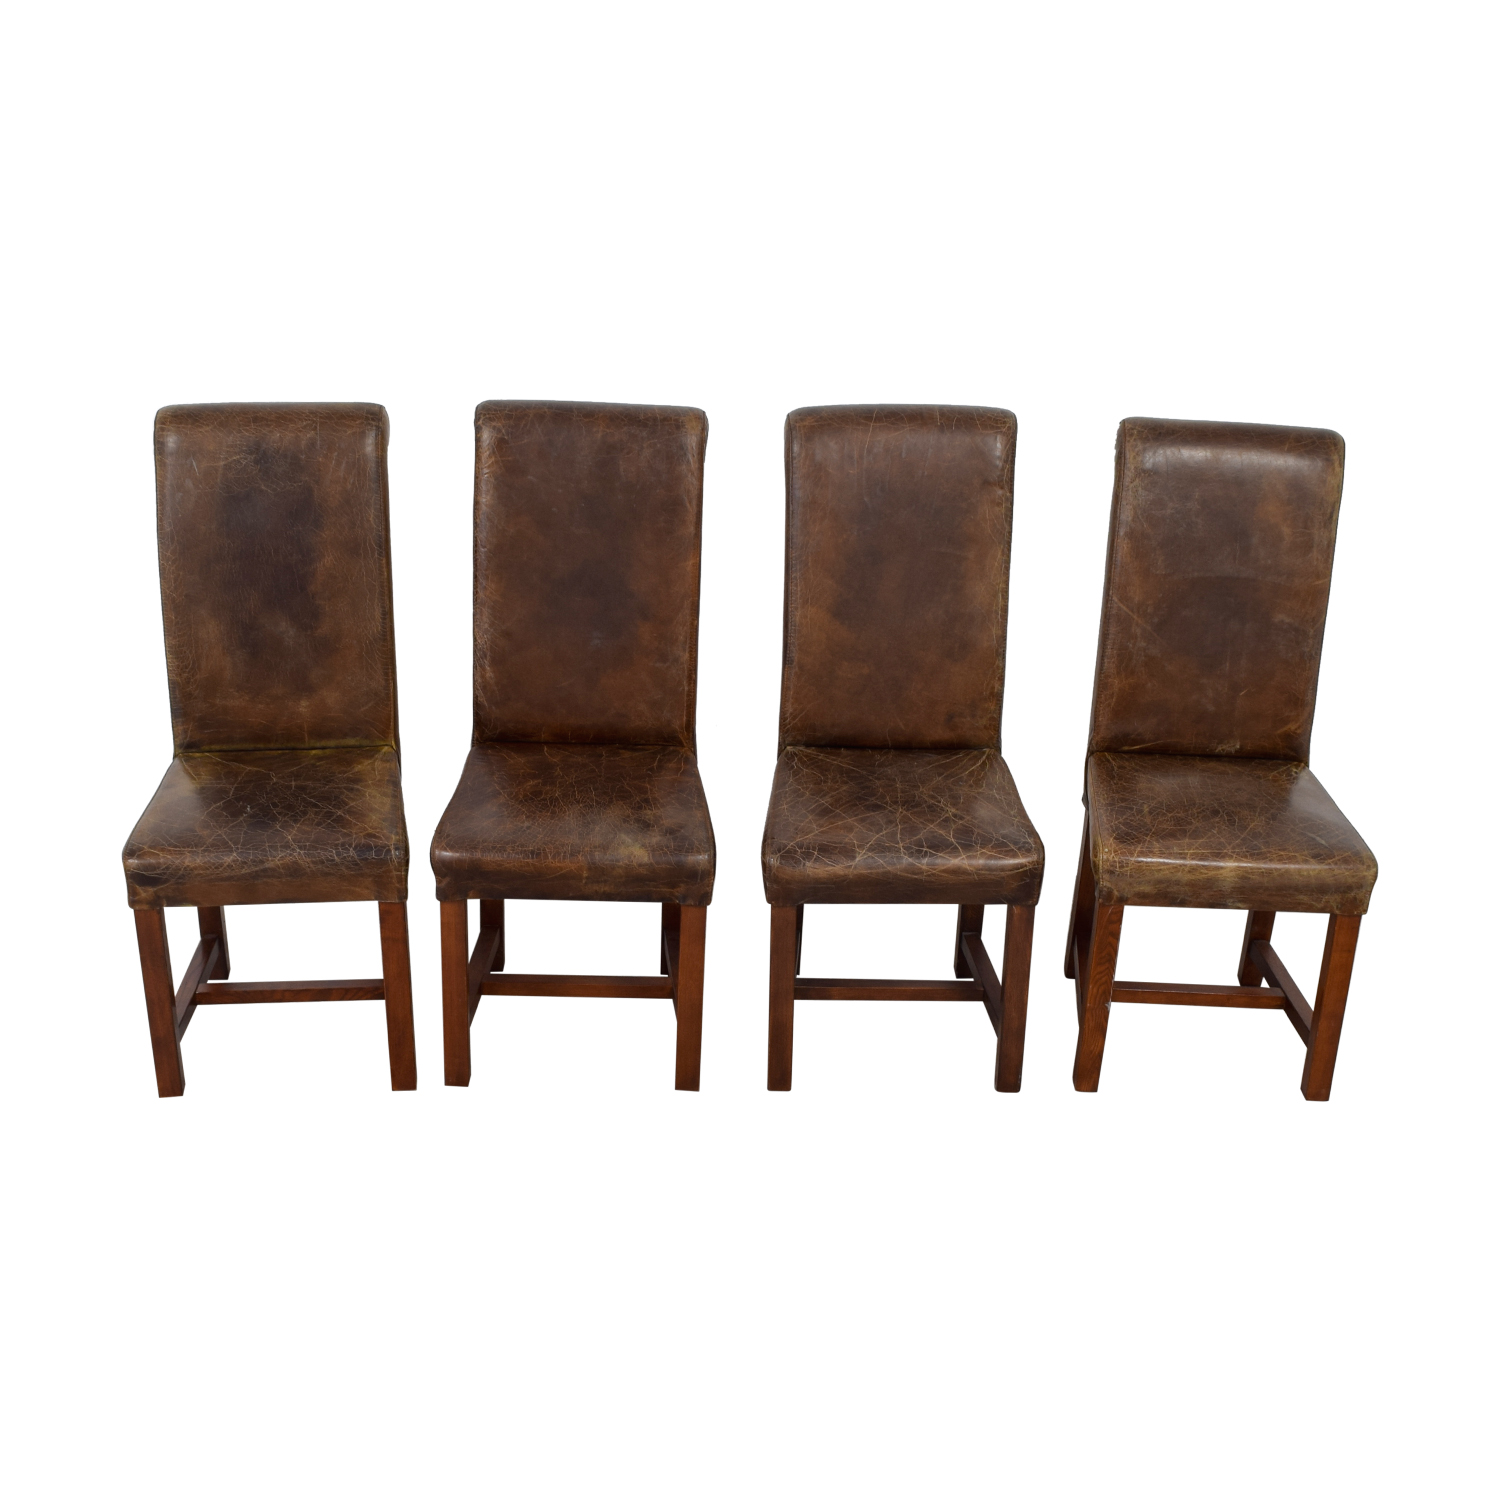 Faulkner Faulkner Distressed Brown Leather Chairs coupon